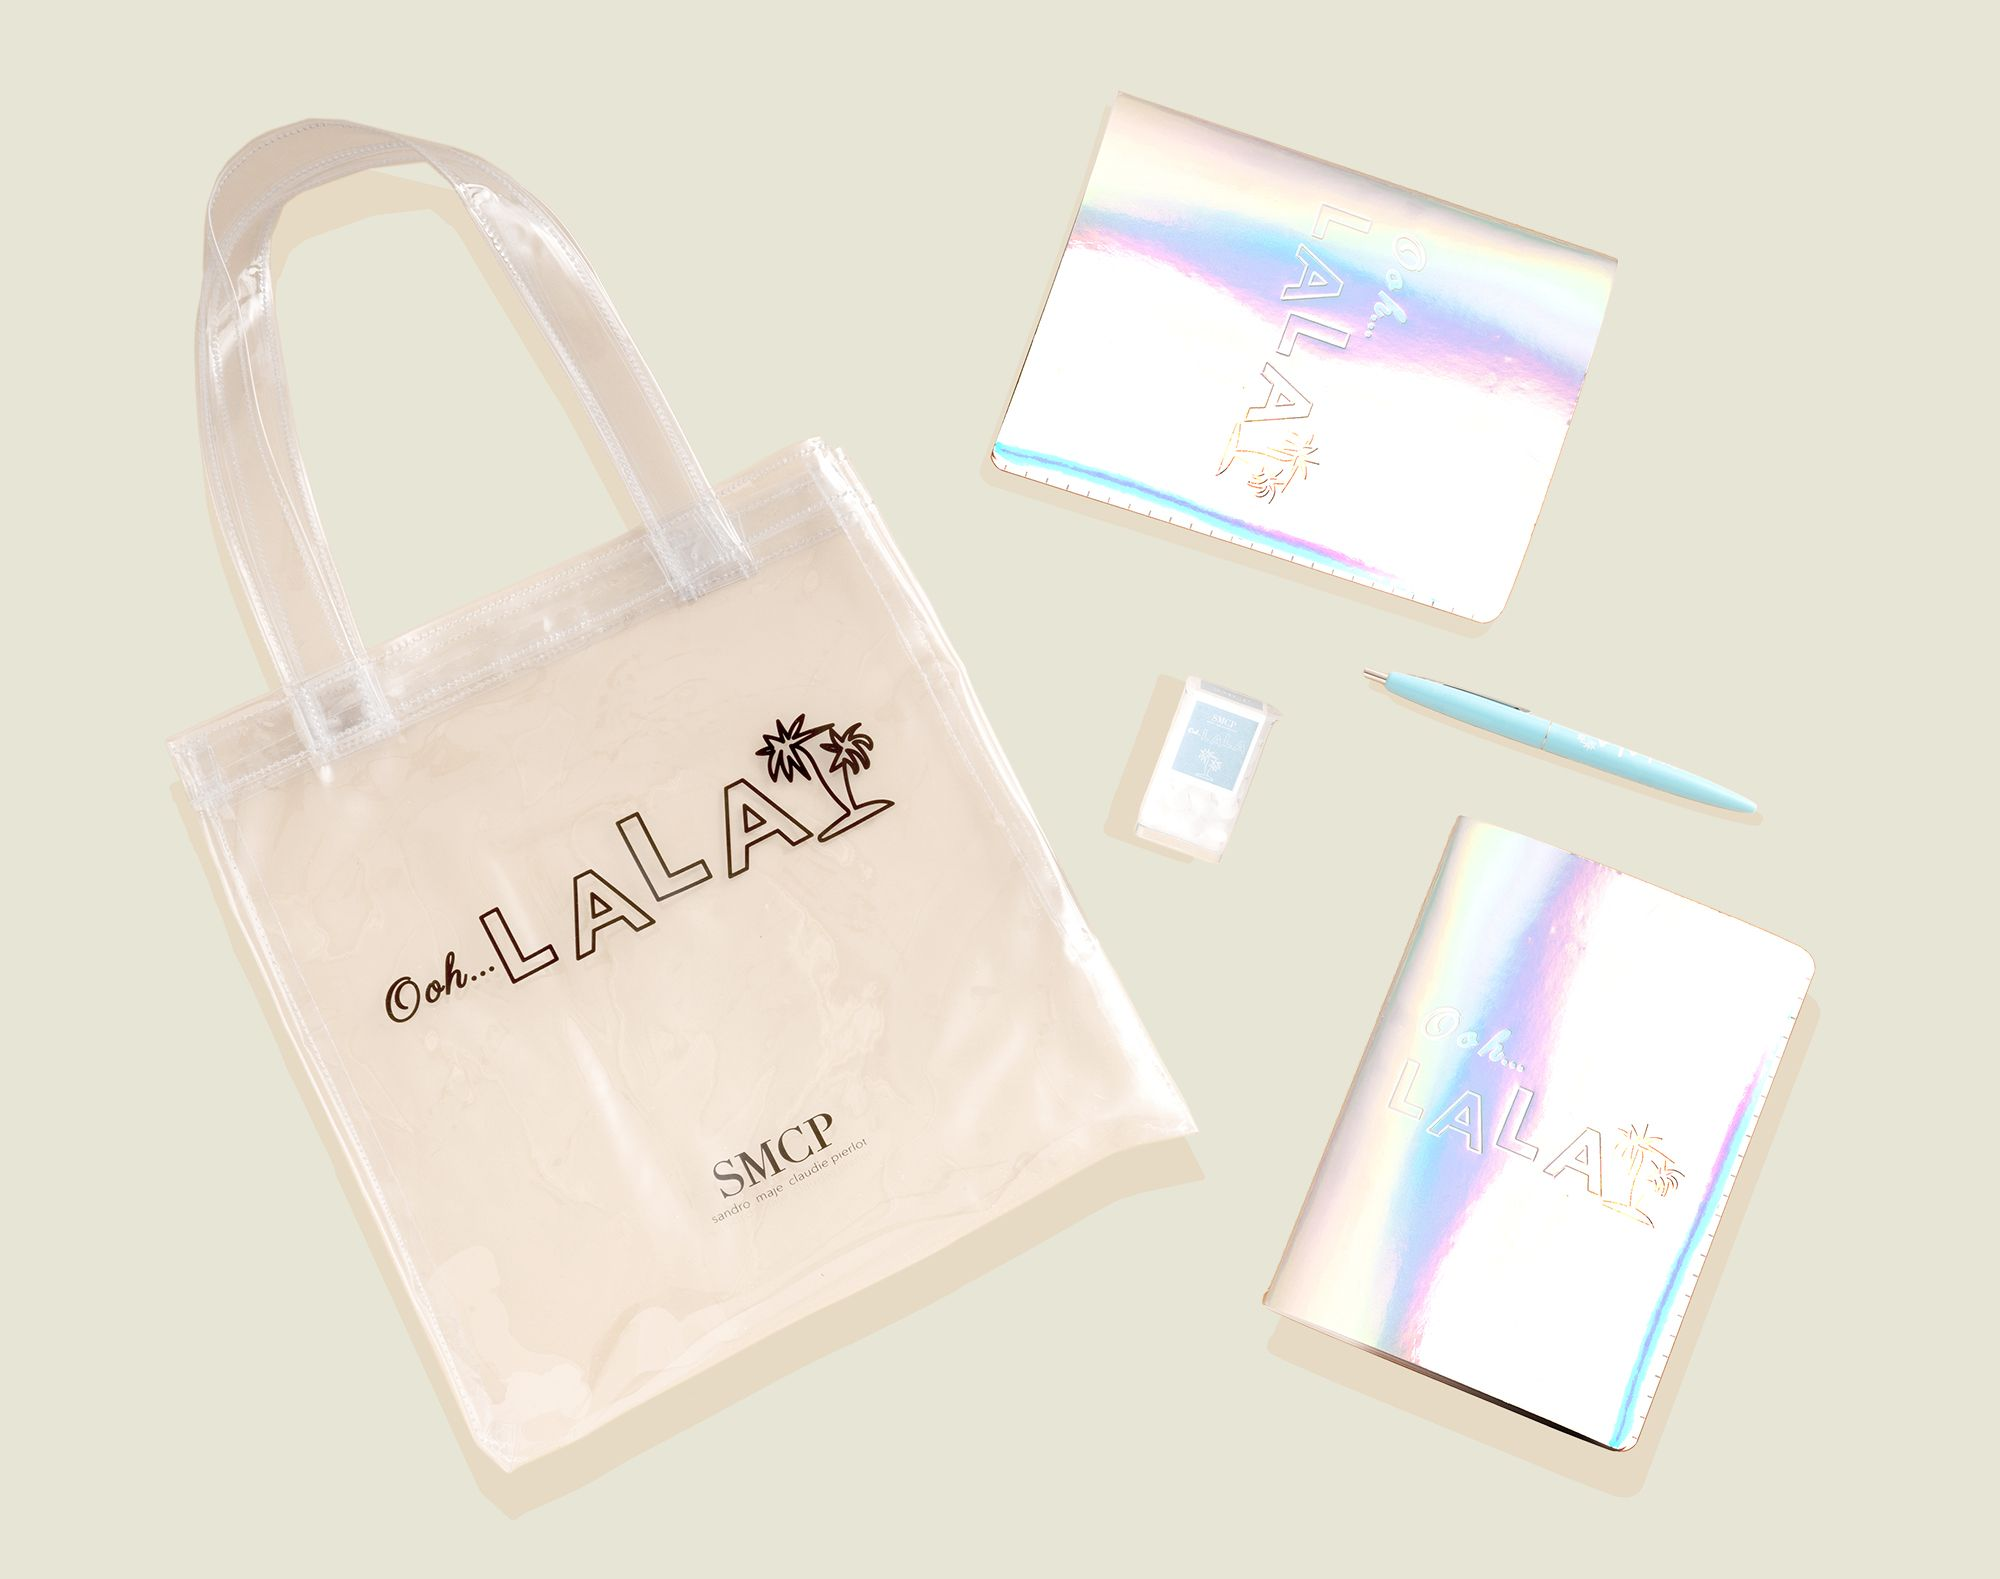 Tote bag with journals and pen